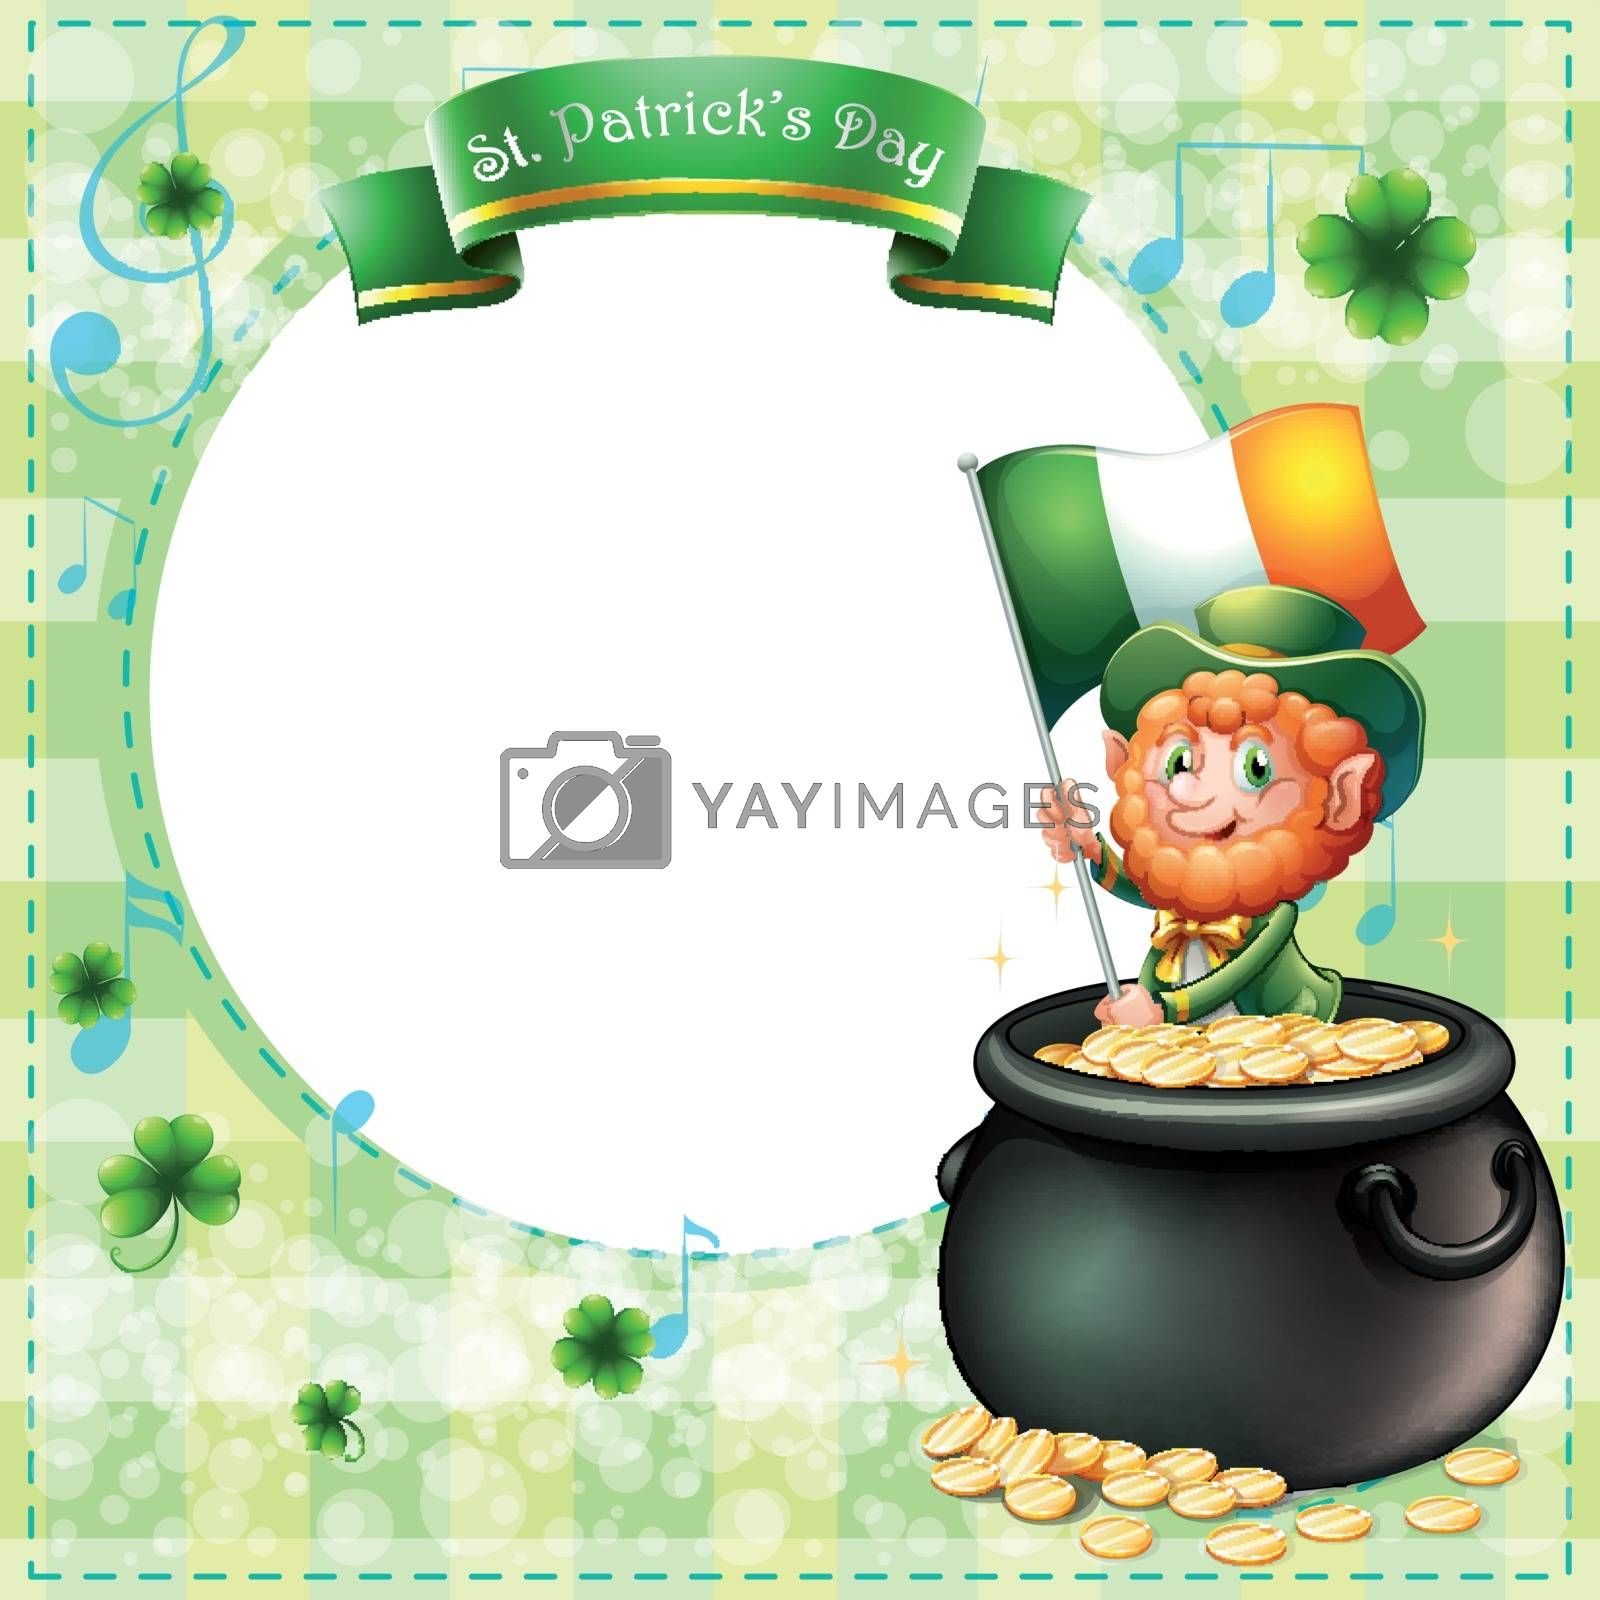 Royalty free image of A stationery for St. Patrick's day with an old man and a pot of  by iimages